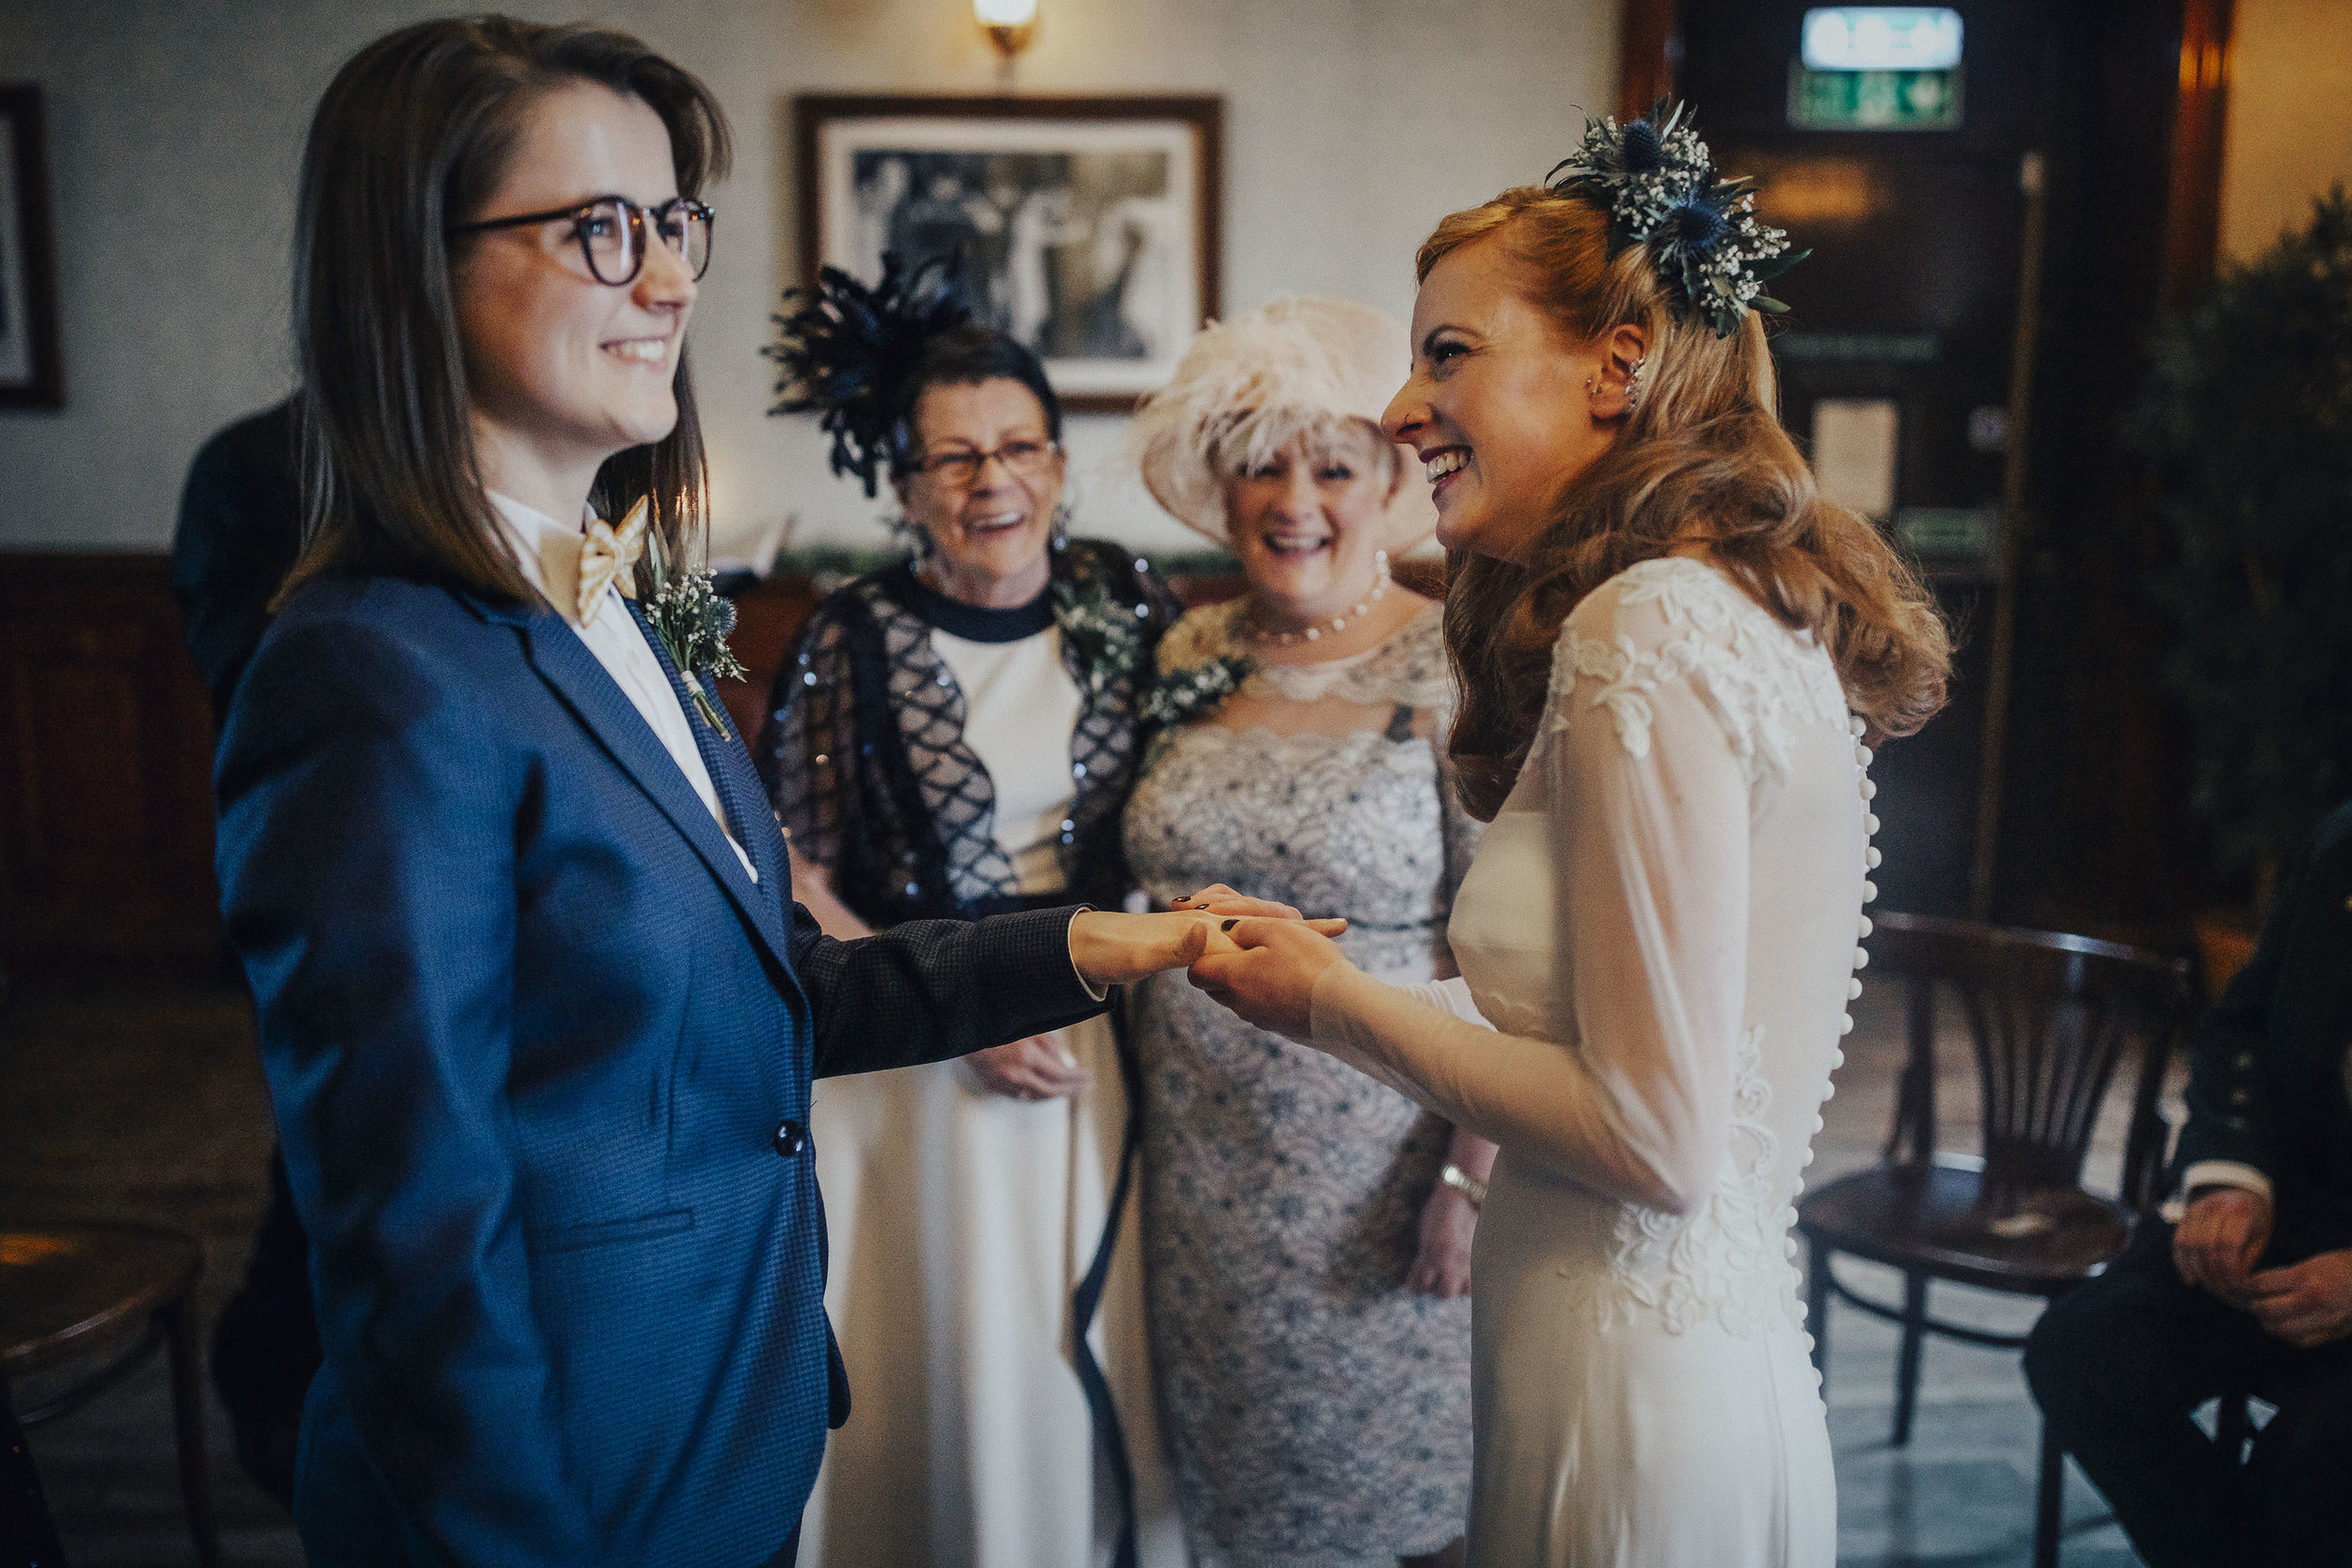 SAME_SEX_WEDDING_PHOTOGRAPHER_SLOANS_GLASGOW_PJ_PHILLIPS_PHOTOGRAPHY_42.jpg